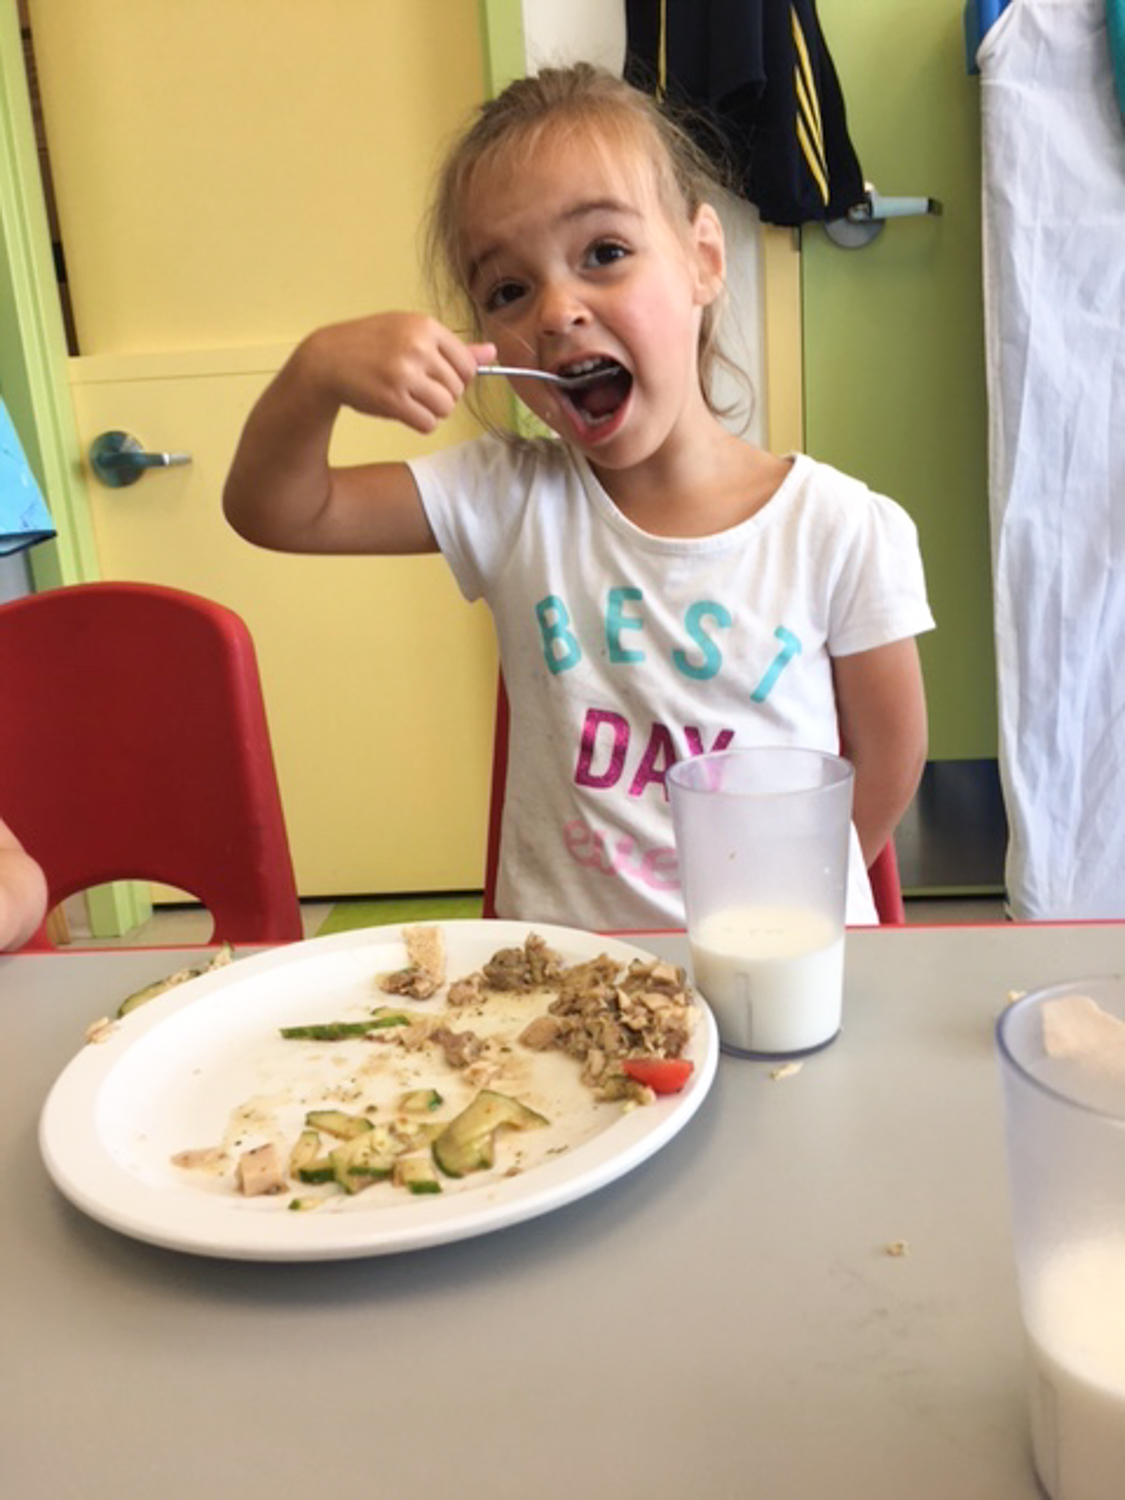 toddler eating lunch